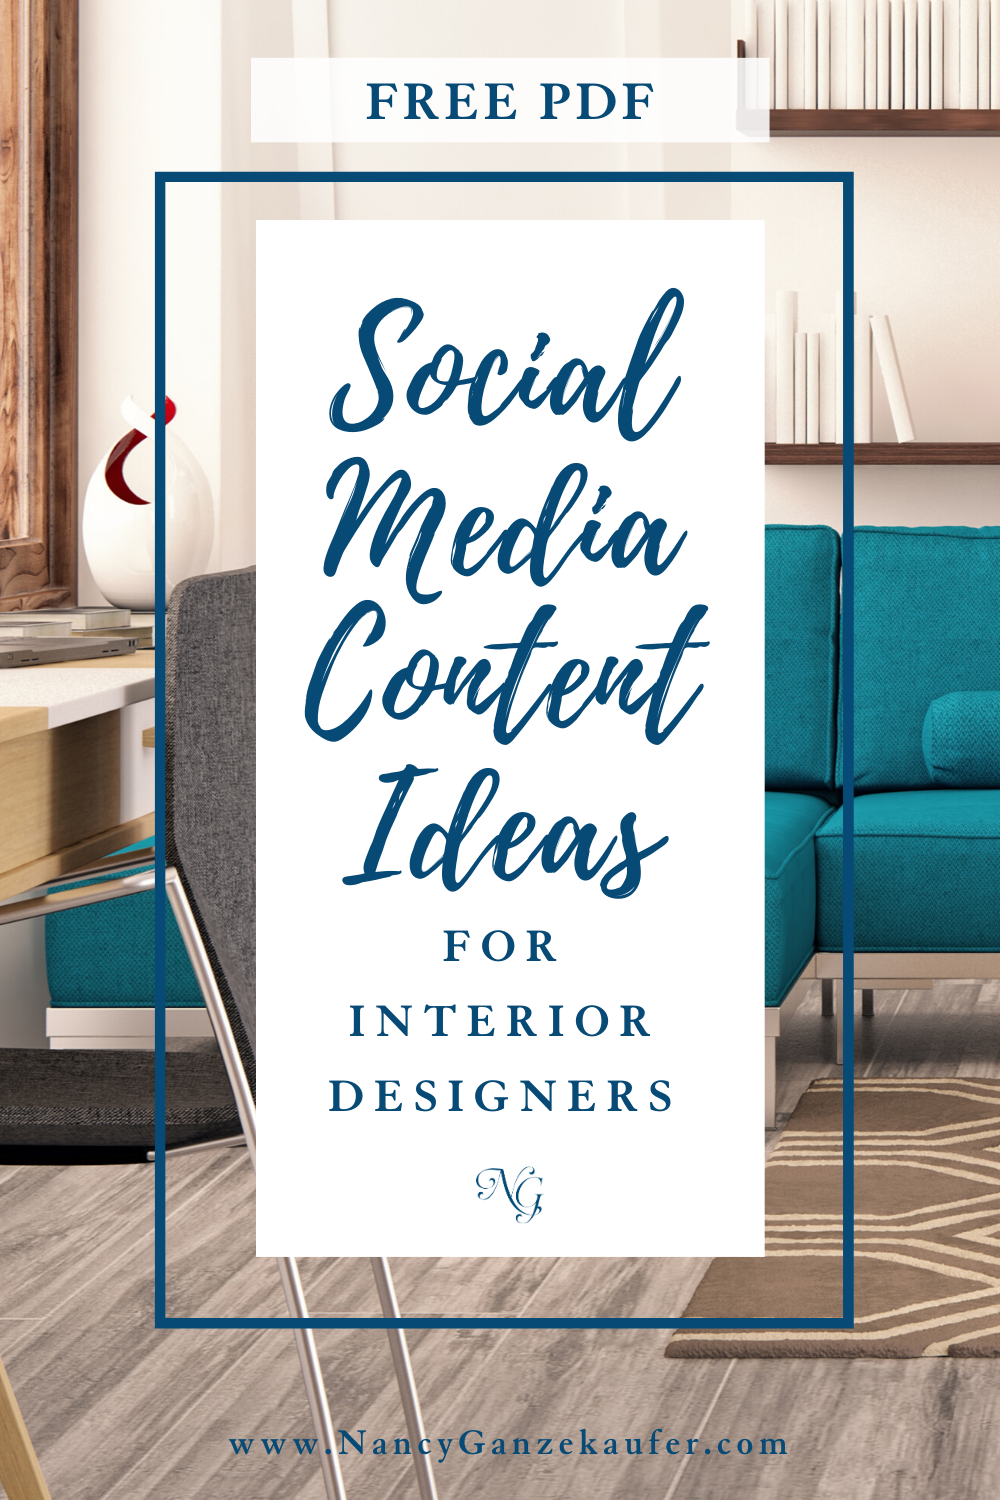 What Should I Post On My Social Media In 2020 Interior Design Quotes Learn Interior Design Social Media Design